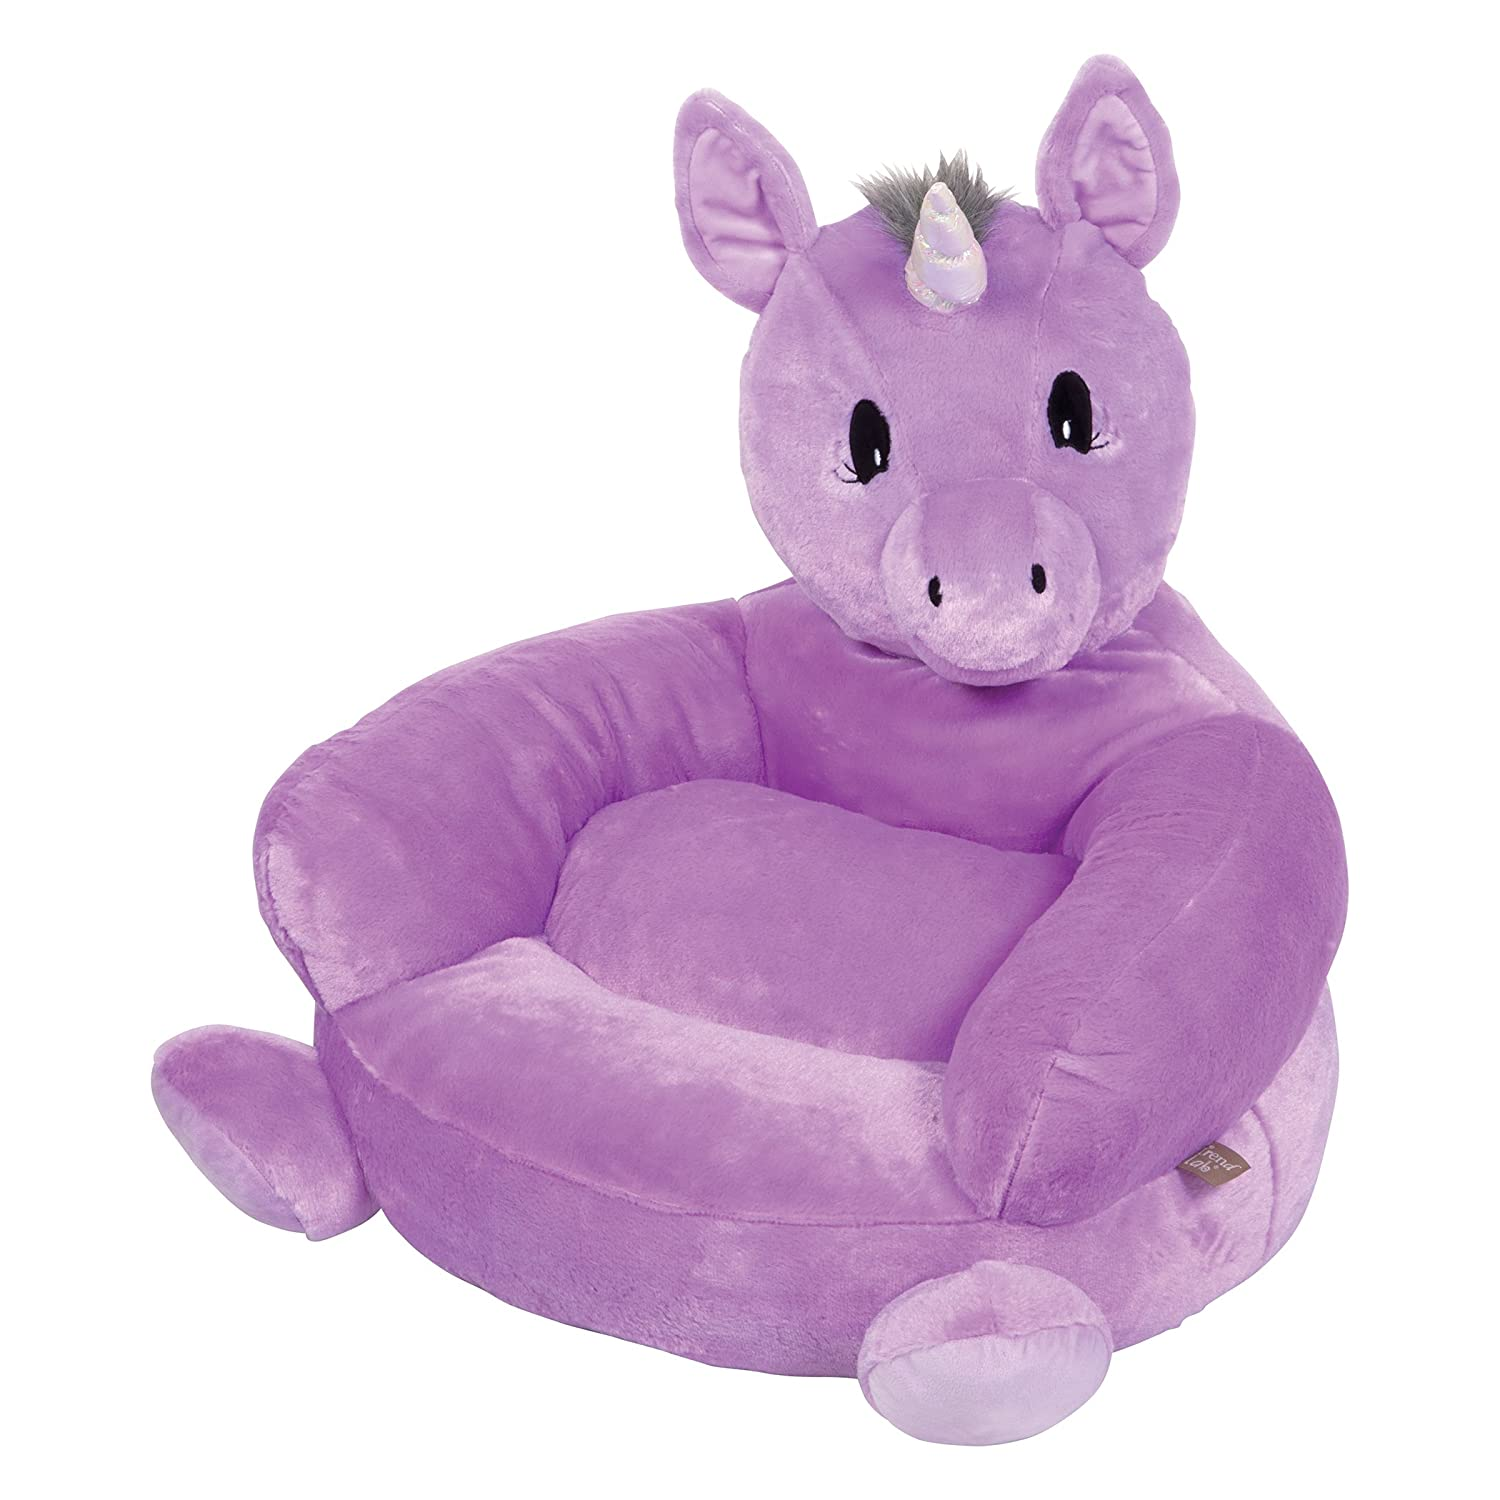 Trend Lab Children's Plush Chair, Unicorn